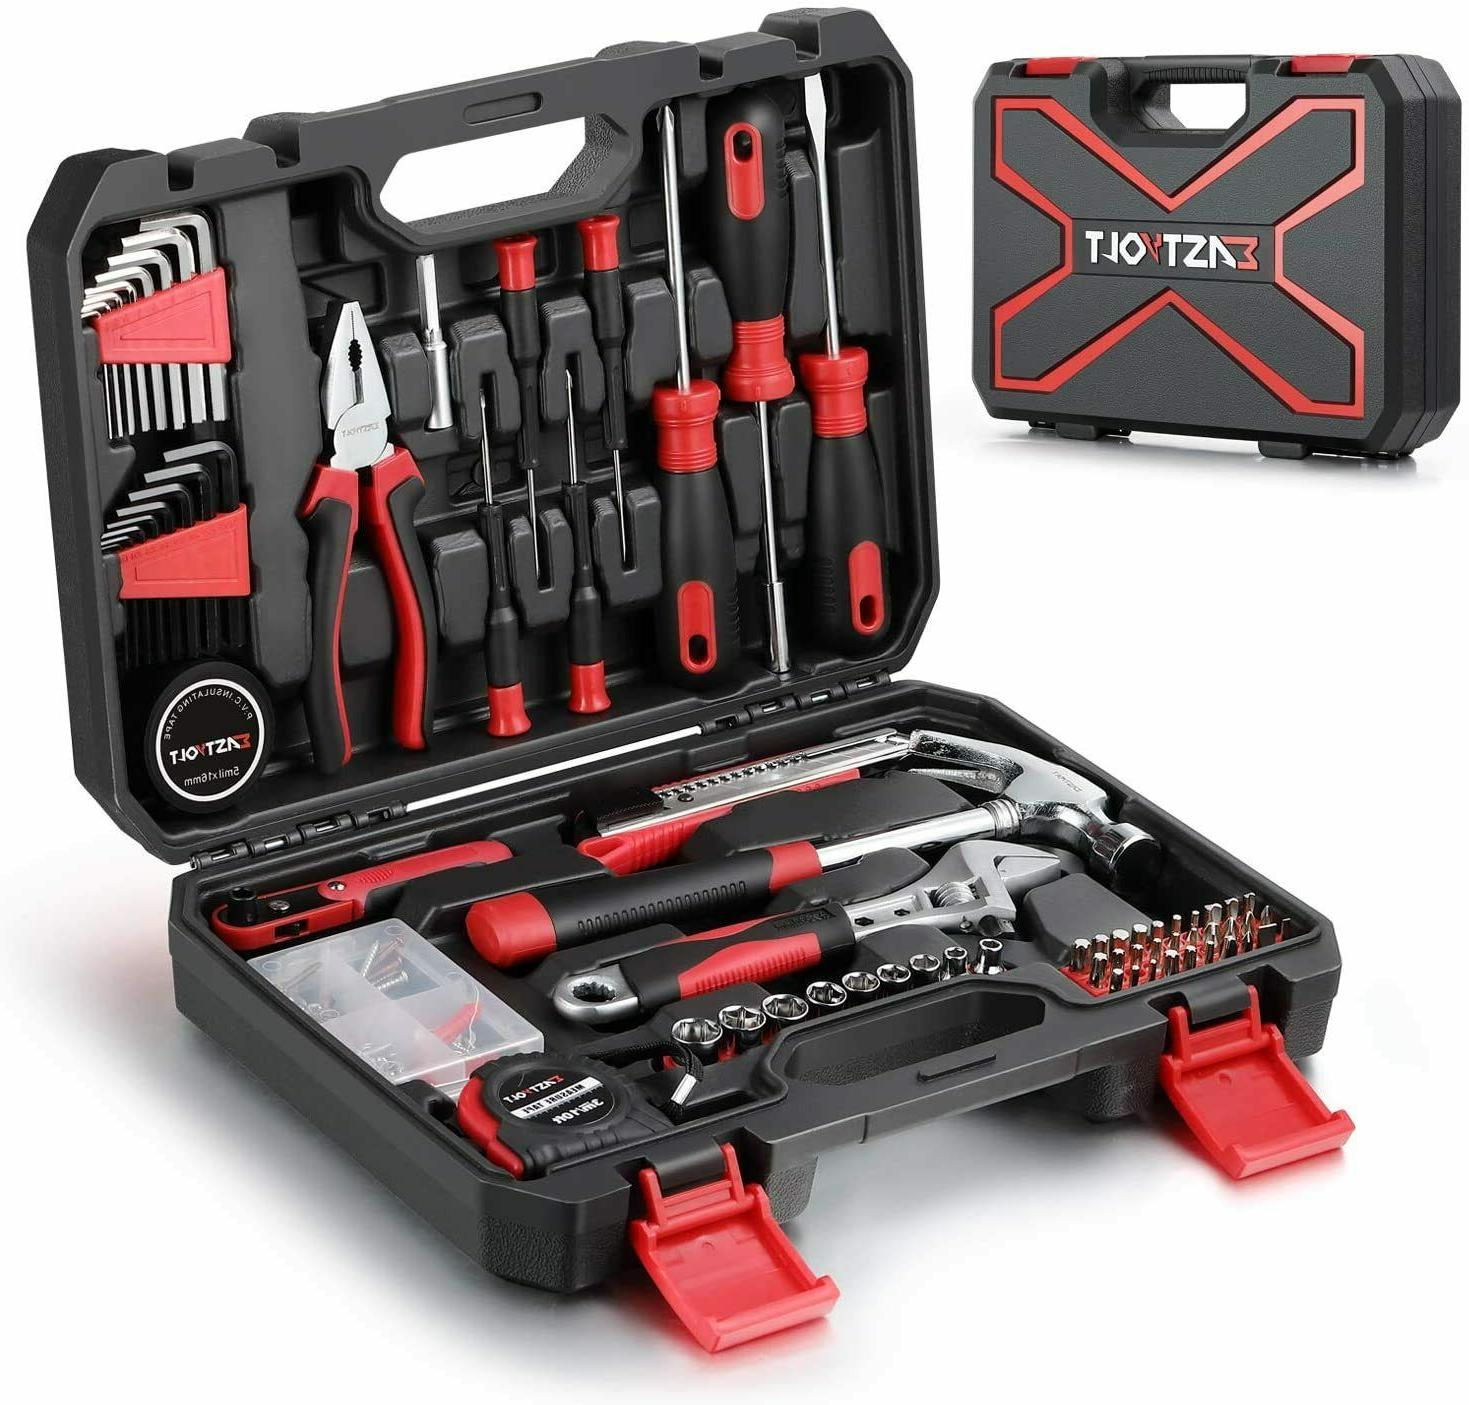 128-Piece Home Repair Tool Set, Tool Sets for Homeowners, Ge